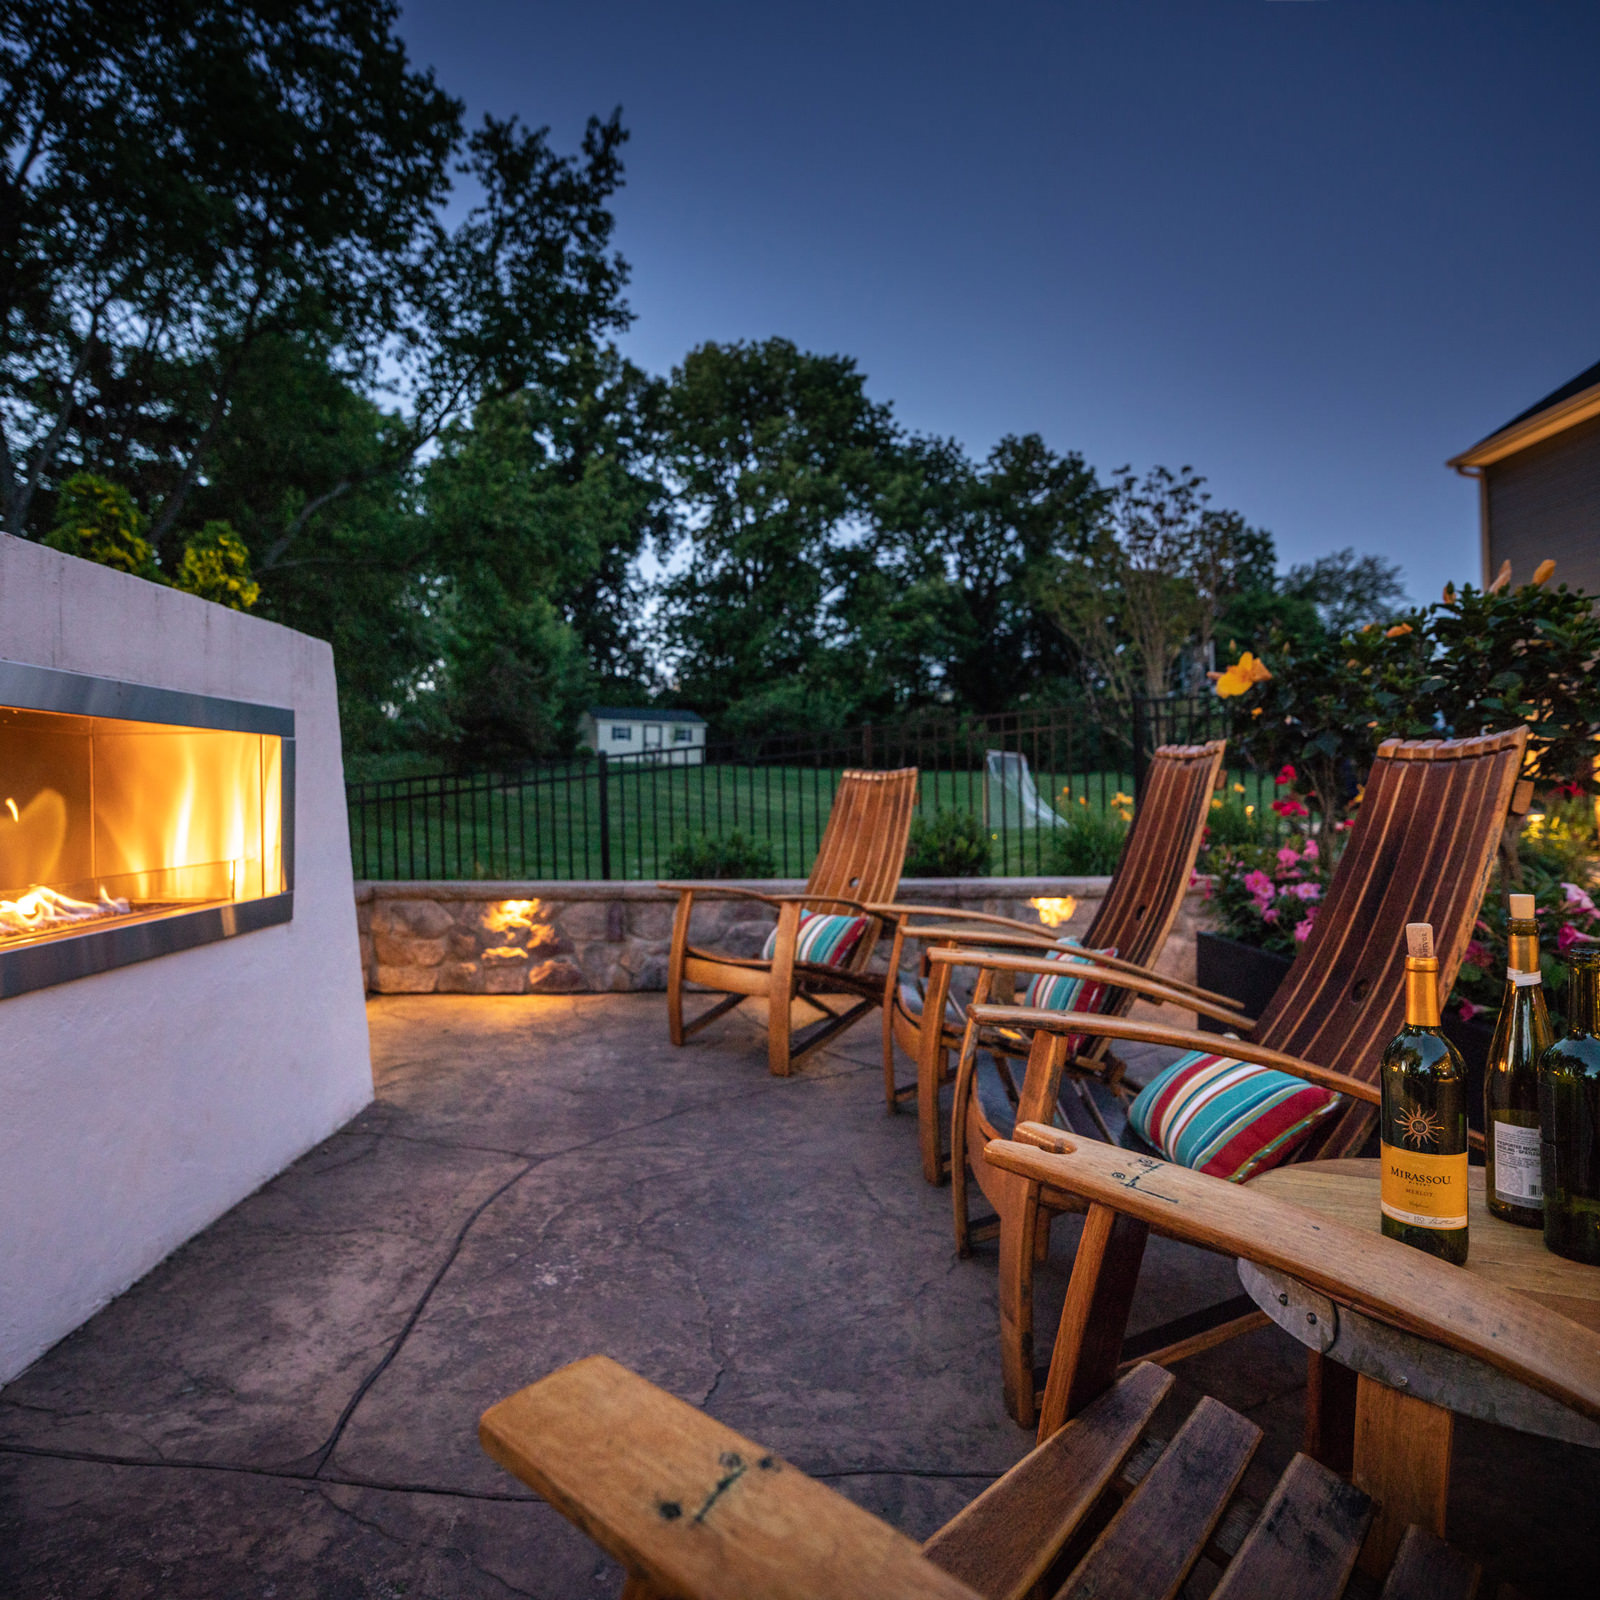 Chilly evenings have never felt so cozy and relaxing! This custom fireplace is a favorite backyard destination for this Royersford family.